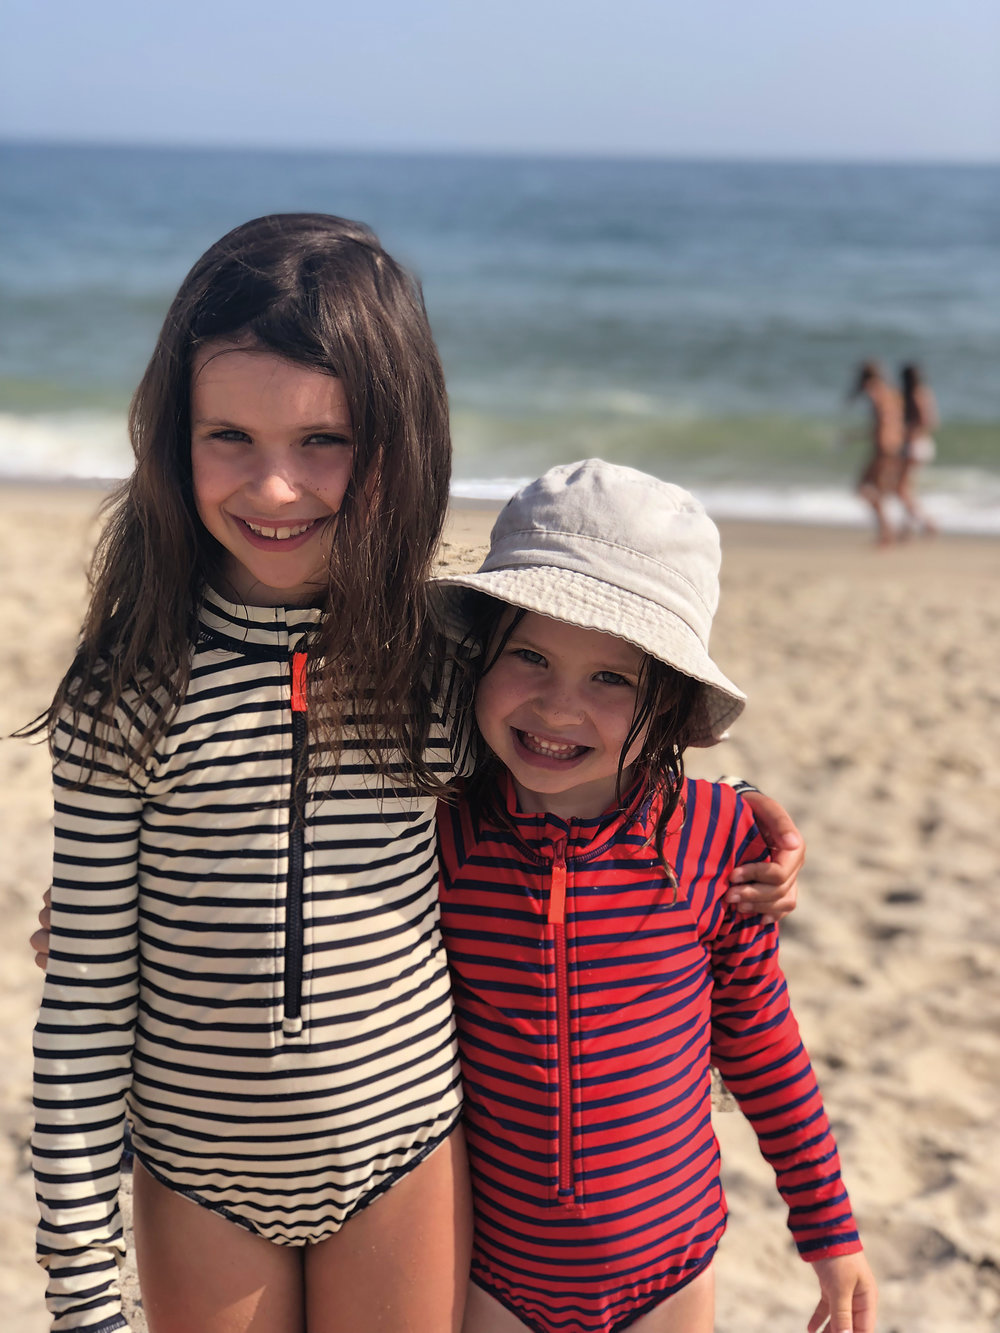 Eloise (7) and Margot (5), daughters of Alison Bardeen '94.